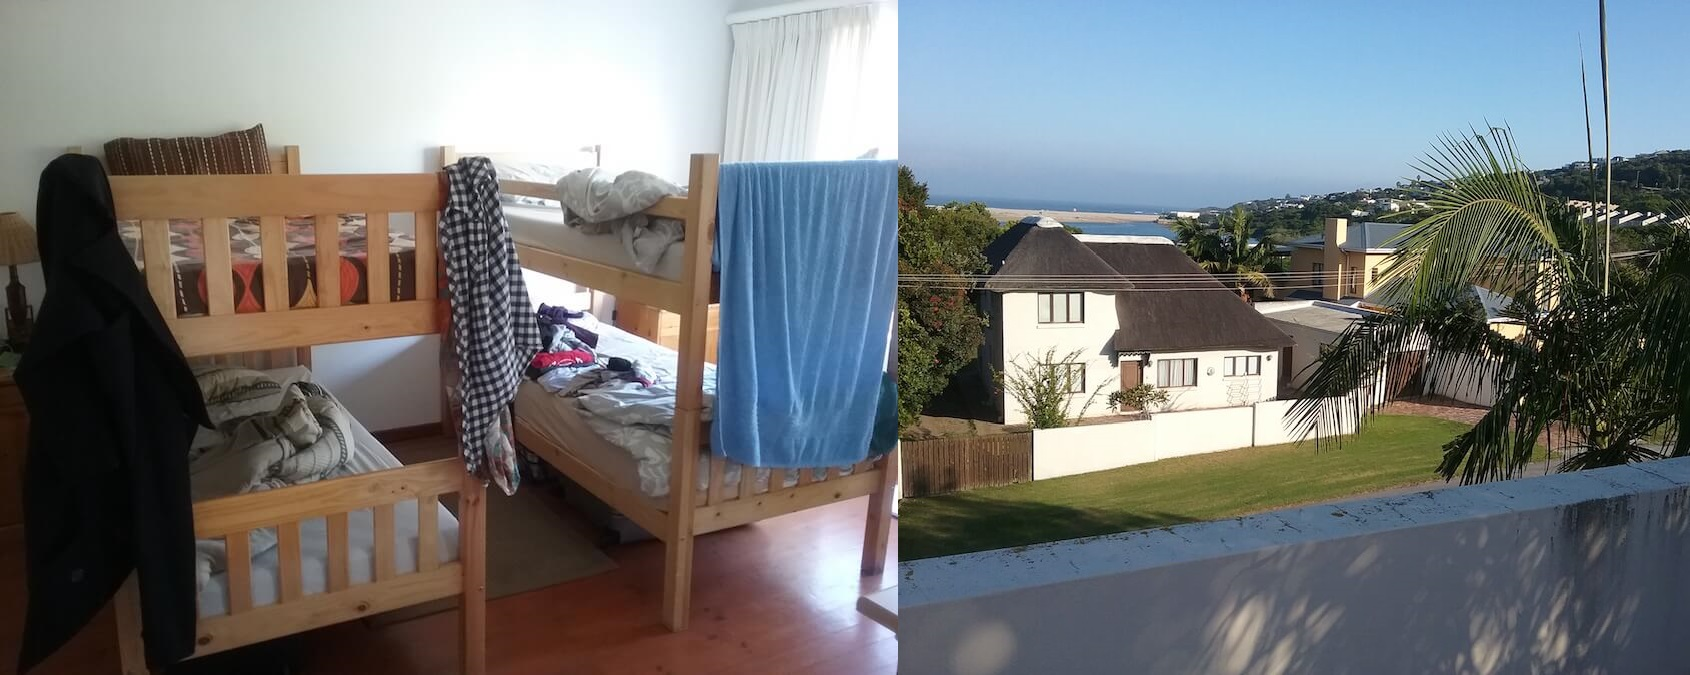 Picture of the accommodation at the Marine conservation project